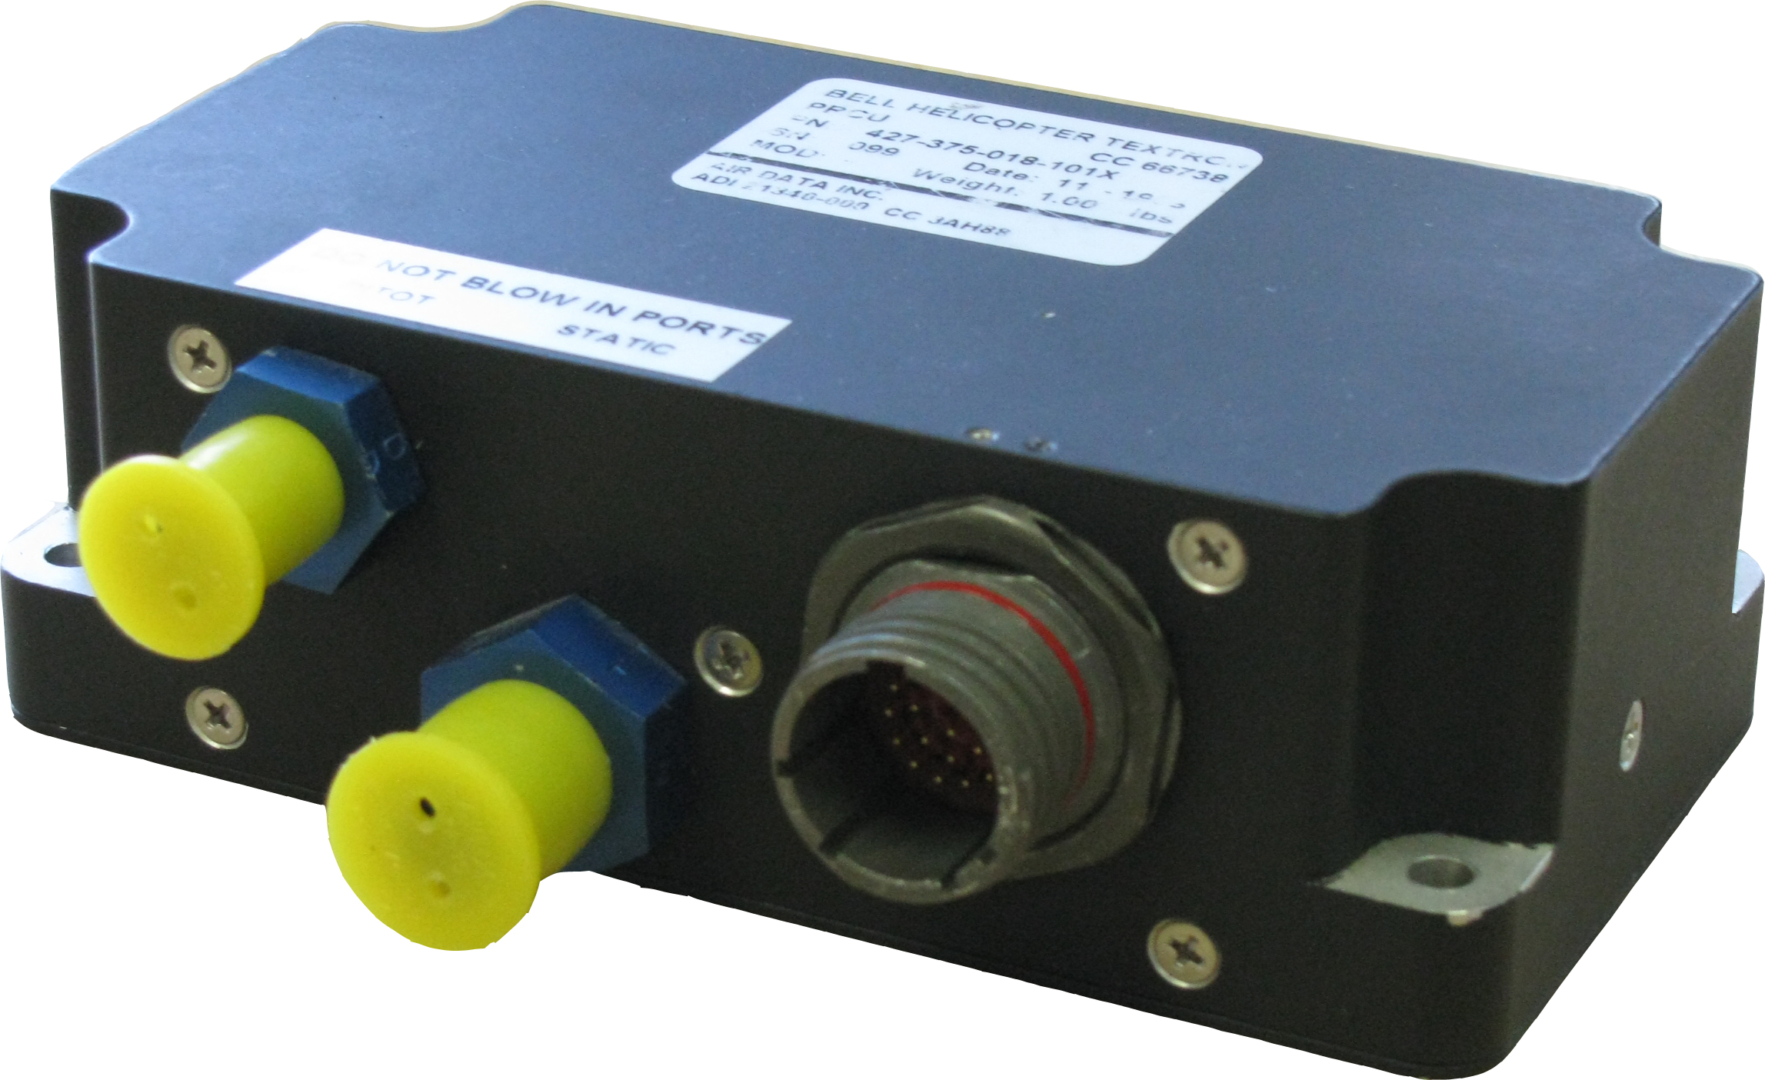 Air Data helicopter equipment pedal restrictor control unit (PRCU)